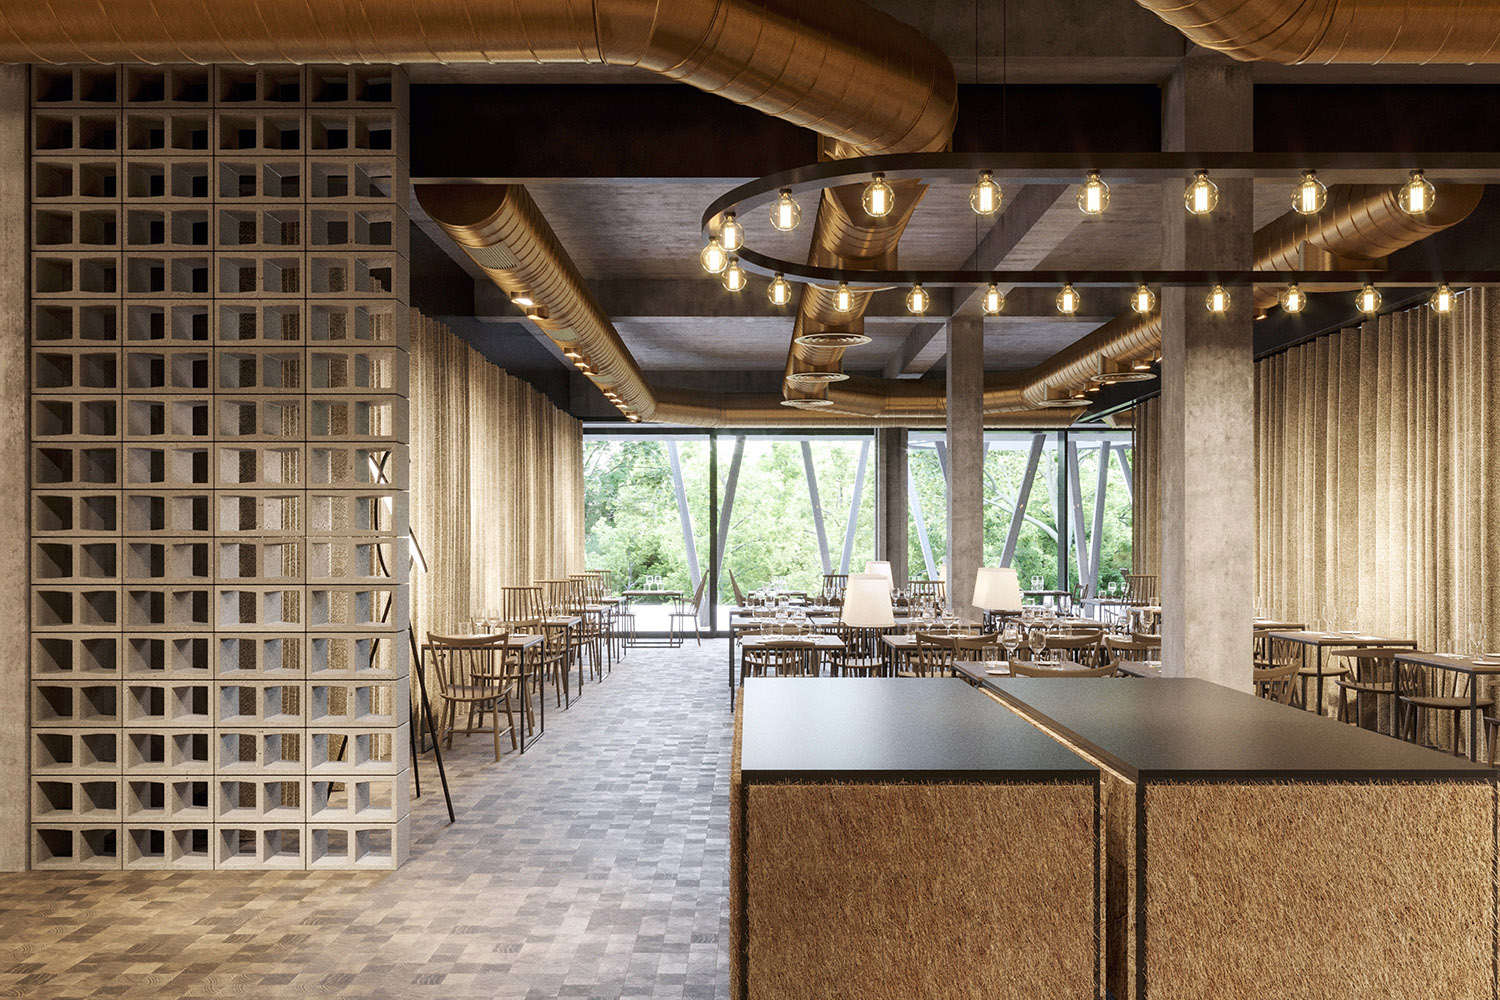 enota maestoso hotel & spa 16 Studio Spacer (visualisations)}